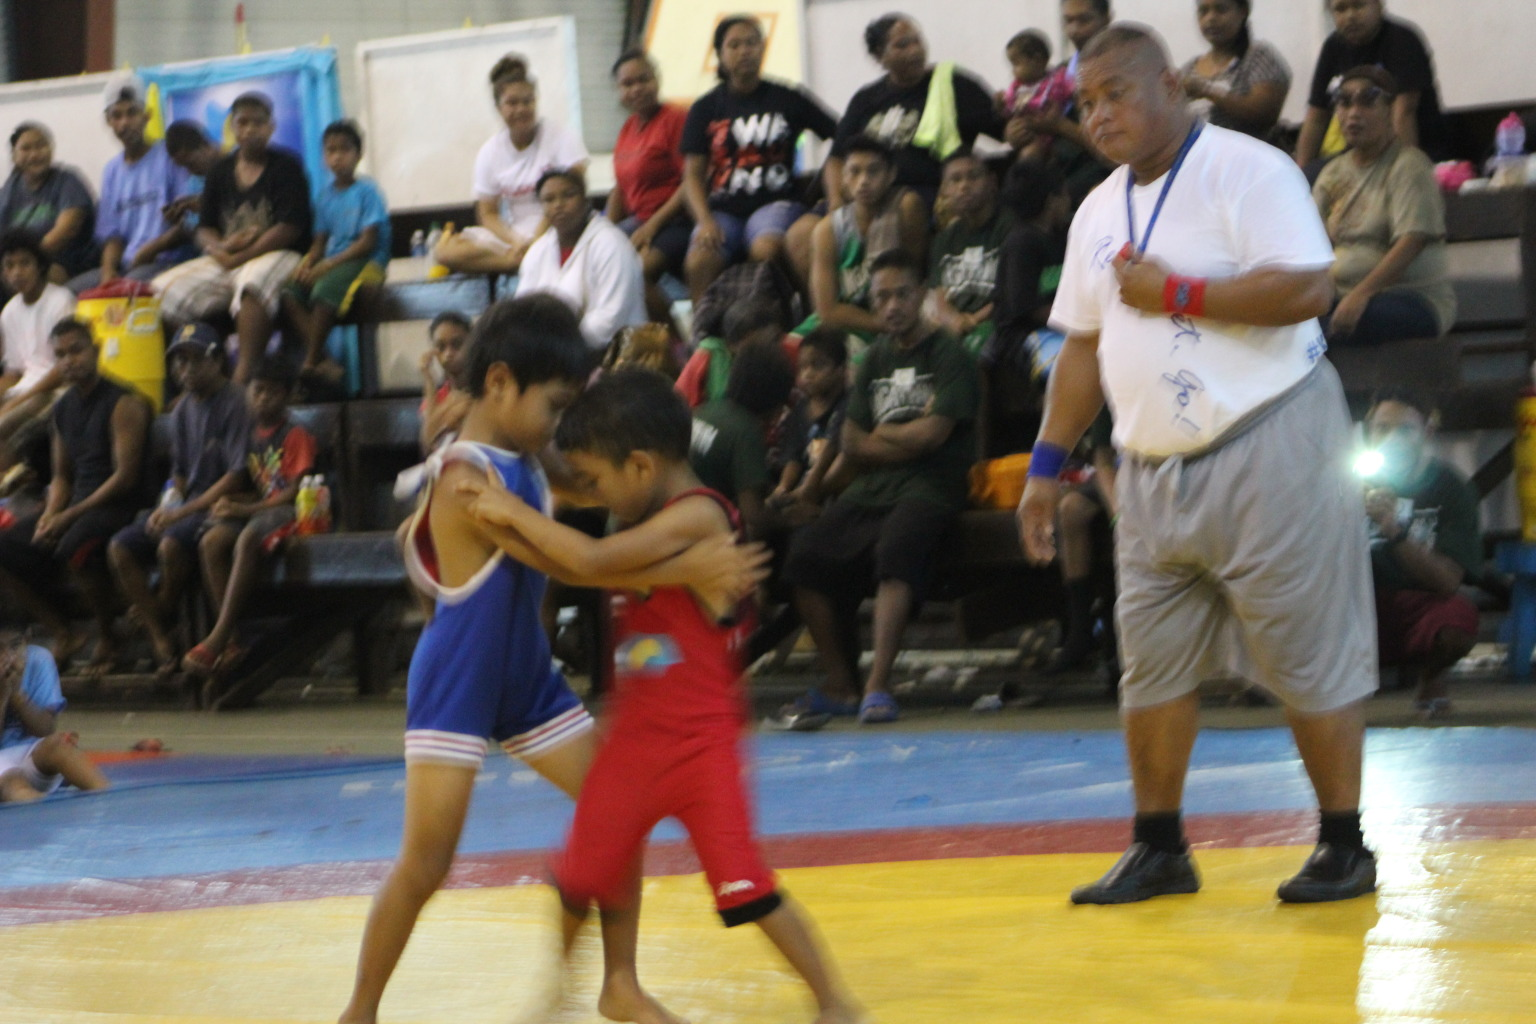 2016 belau youth games amp festival belau wrestling federation